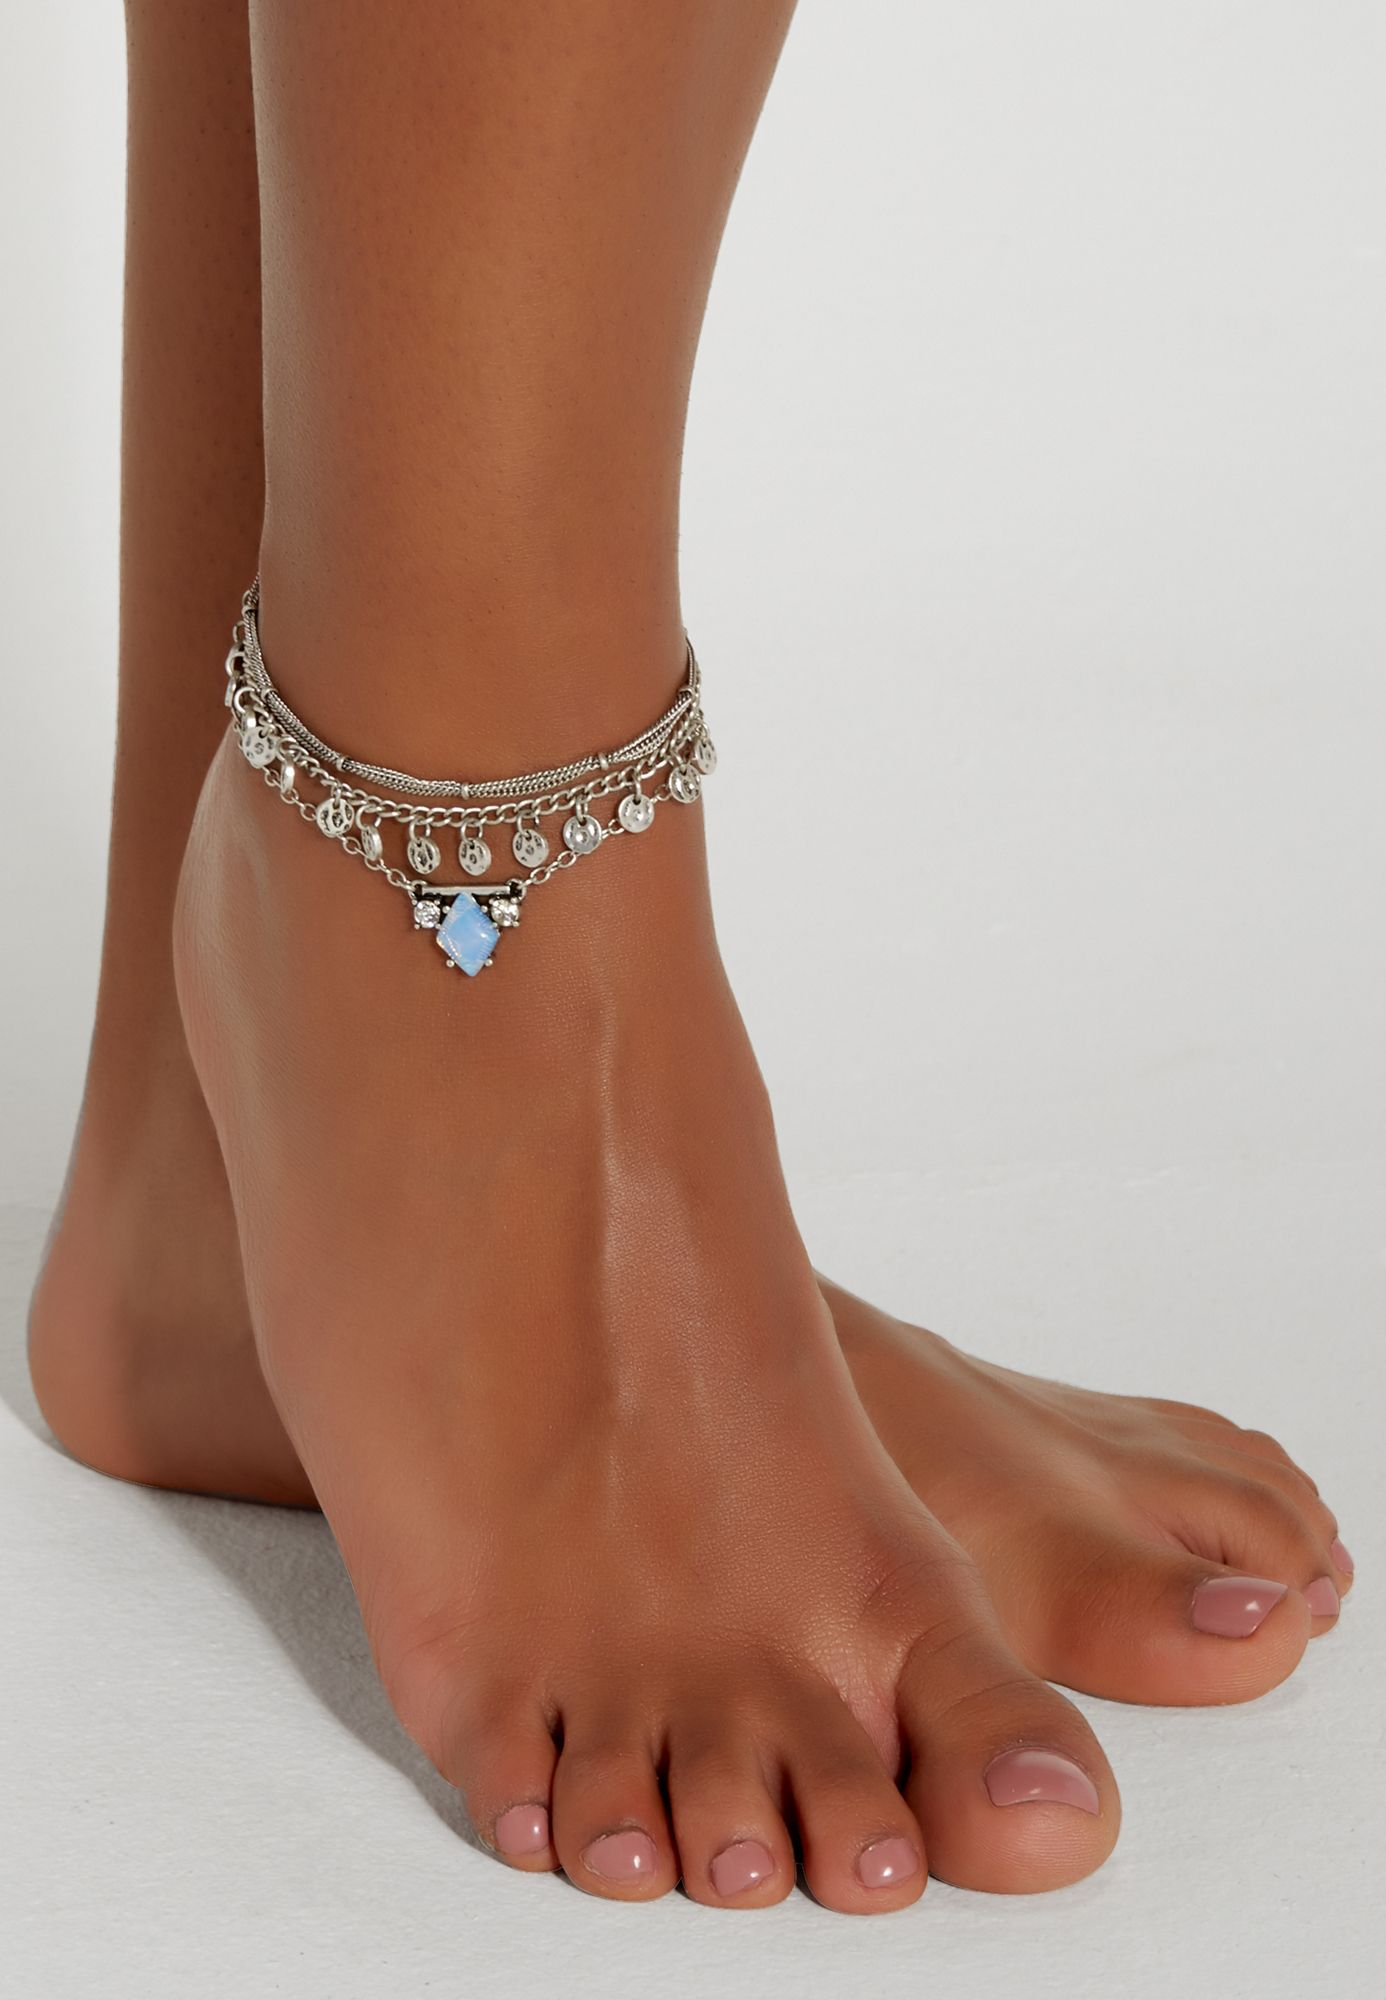 listing fullxfull zoom name with il custom ankle gold personalized anklet bracelets